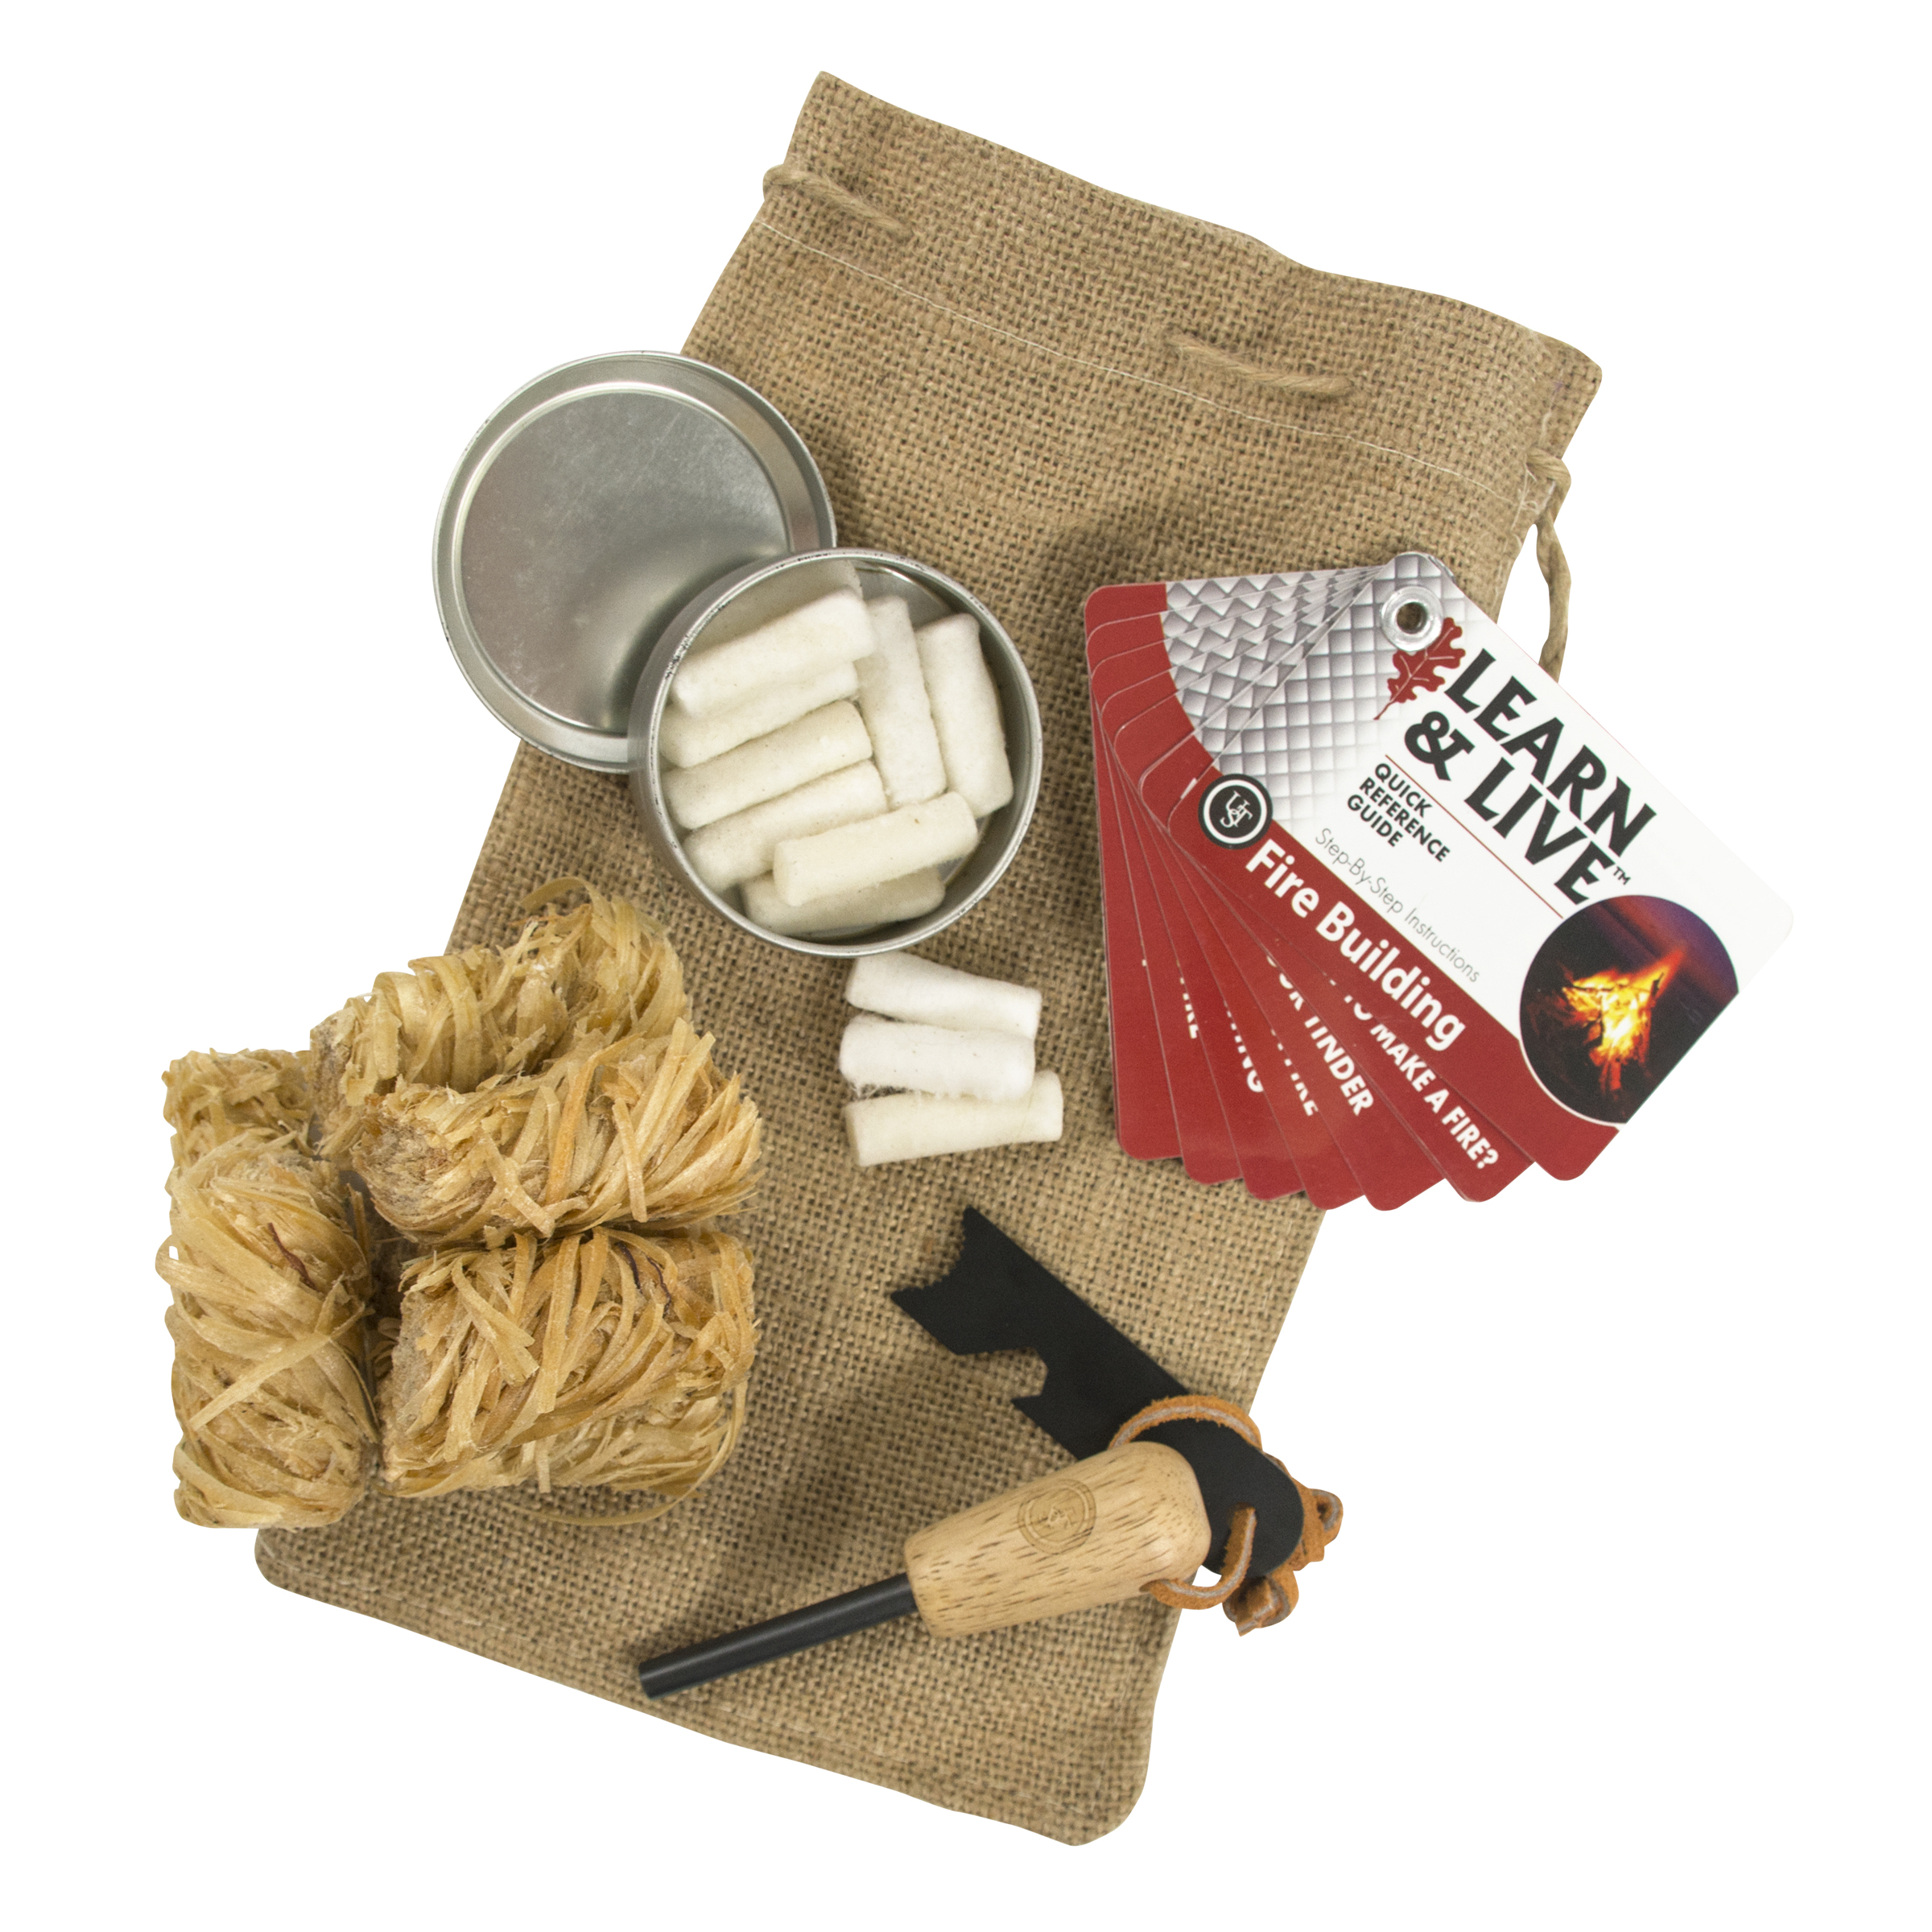 20-12119 - UST Brands Heritage Campfire Kit Peggable Box